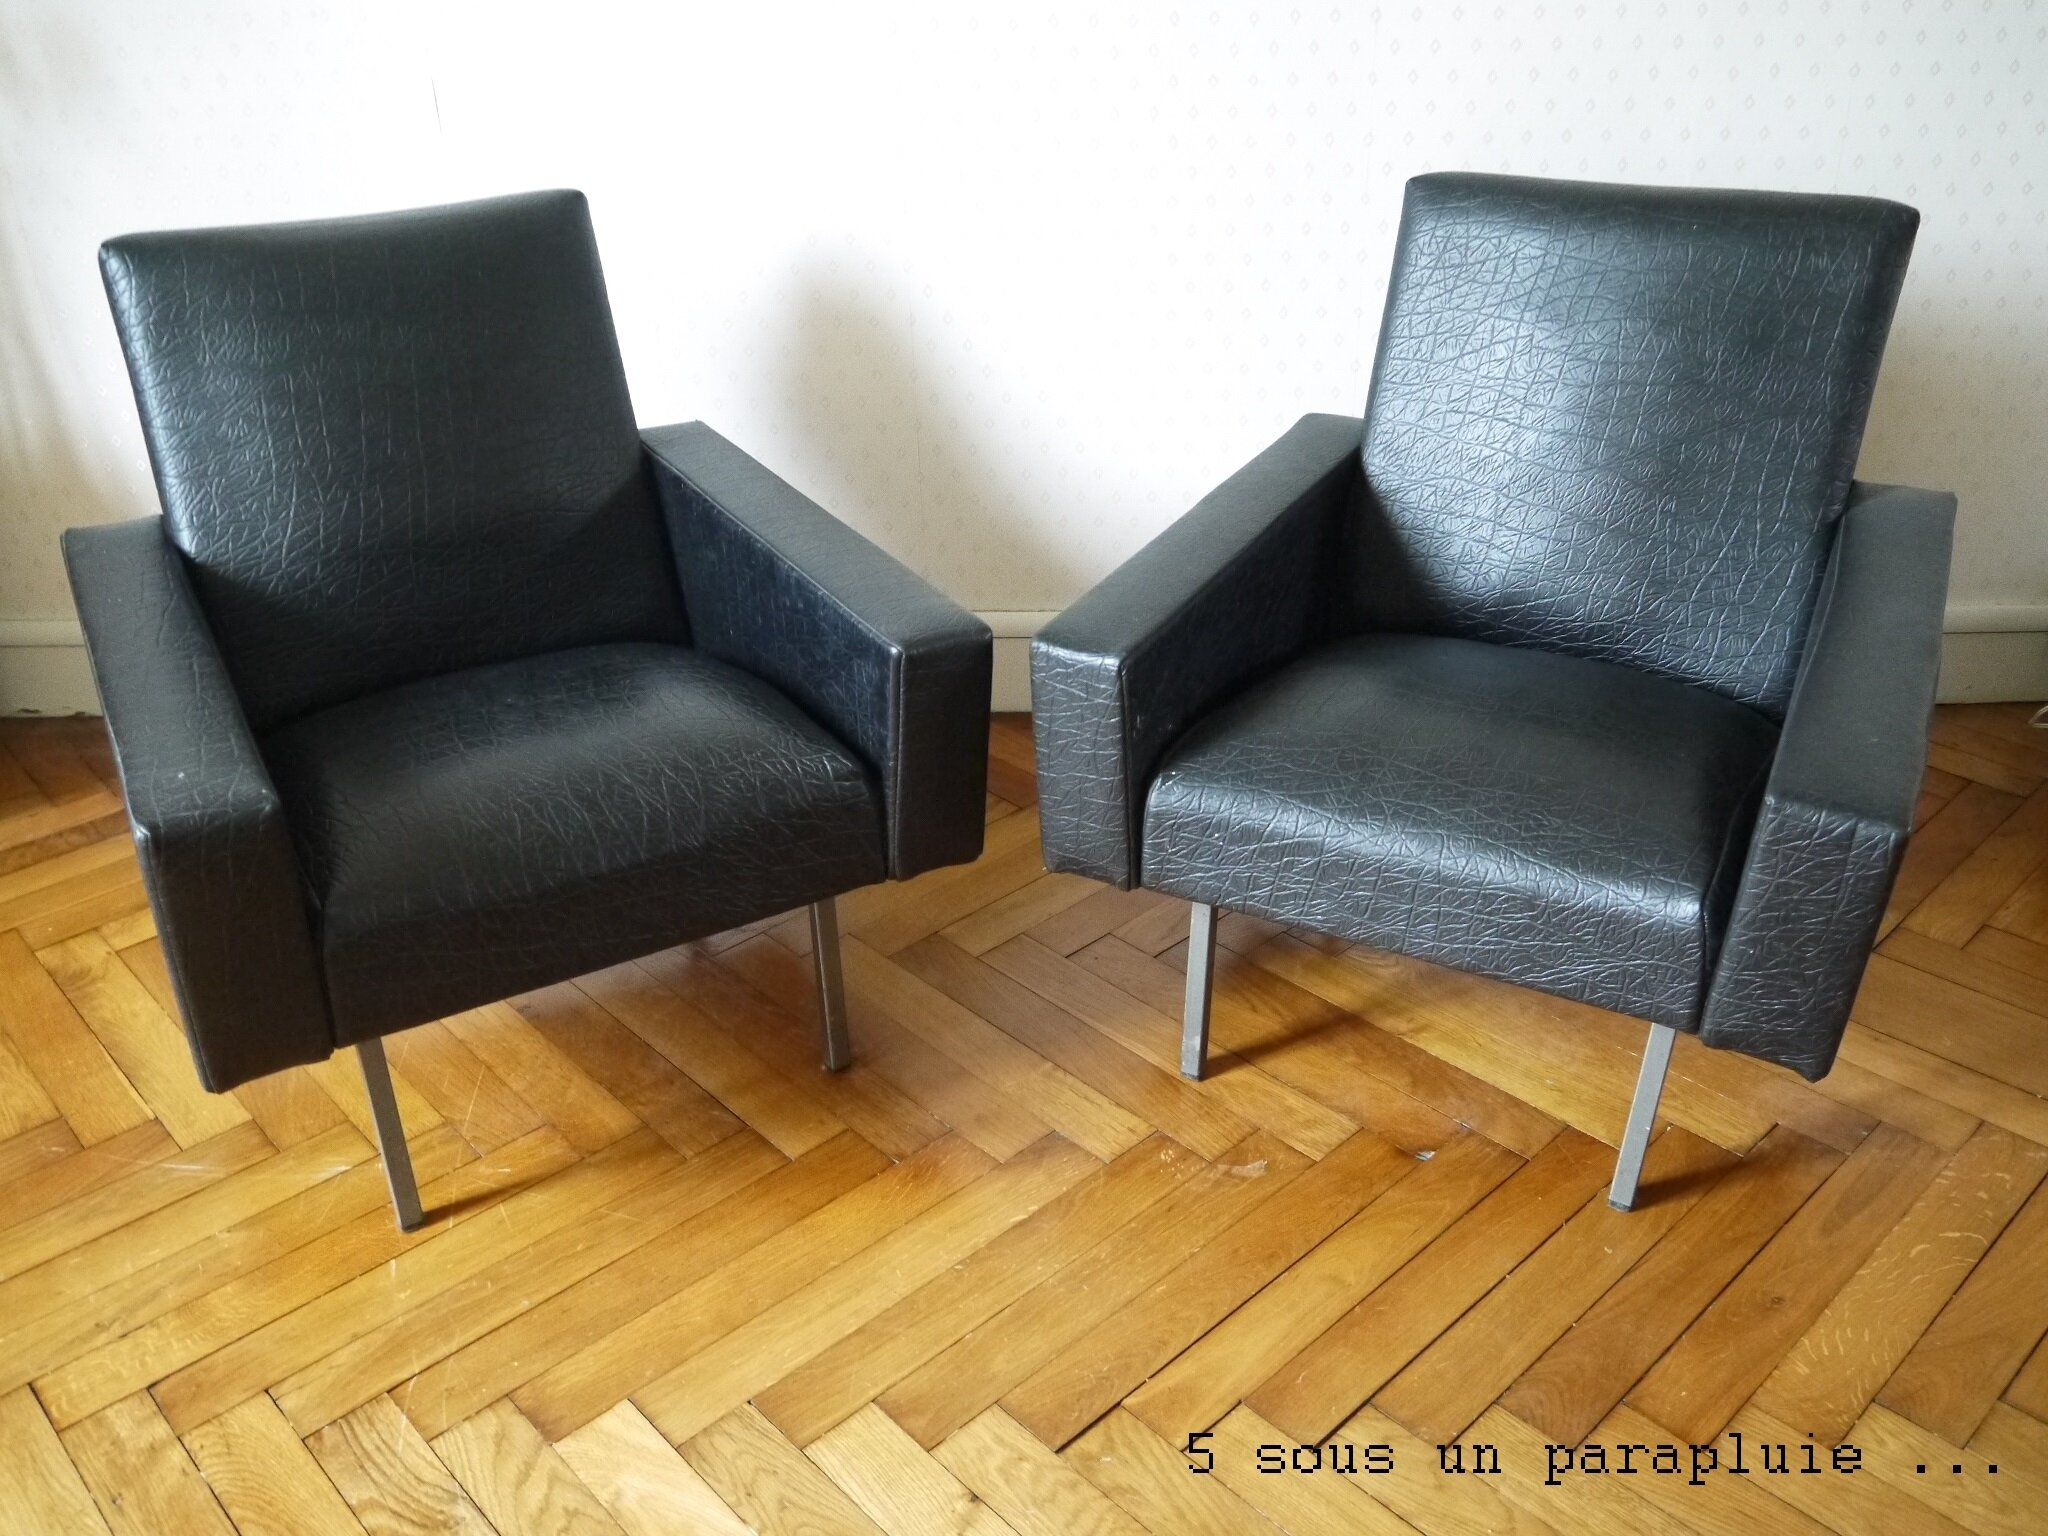 fauteuils de salon en ska noir vintage 5 sous un parapluie. Black Bedroom Furniture Sets. Home Design Ideas